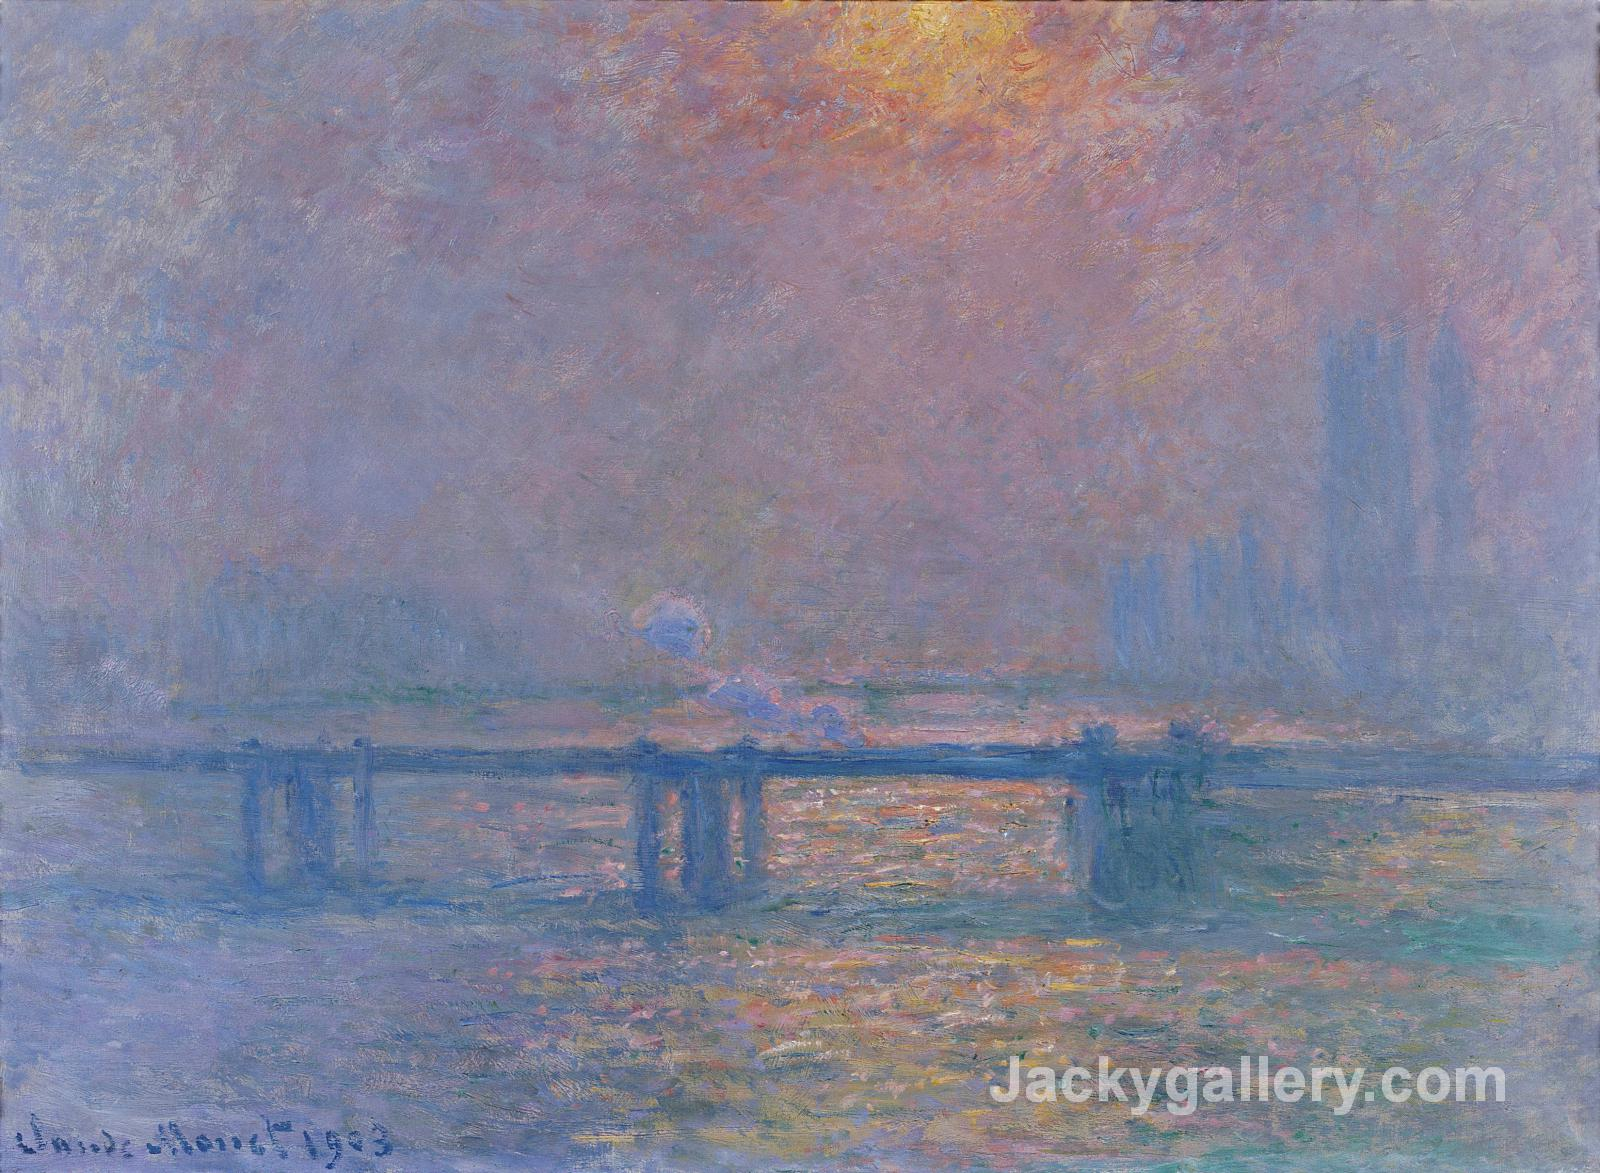 Charing Cross Bridge, The Thames by Claude Monet paintings reproduction